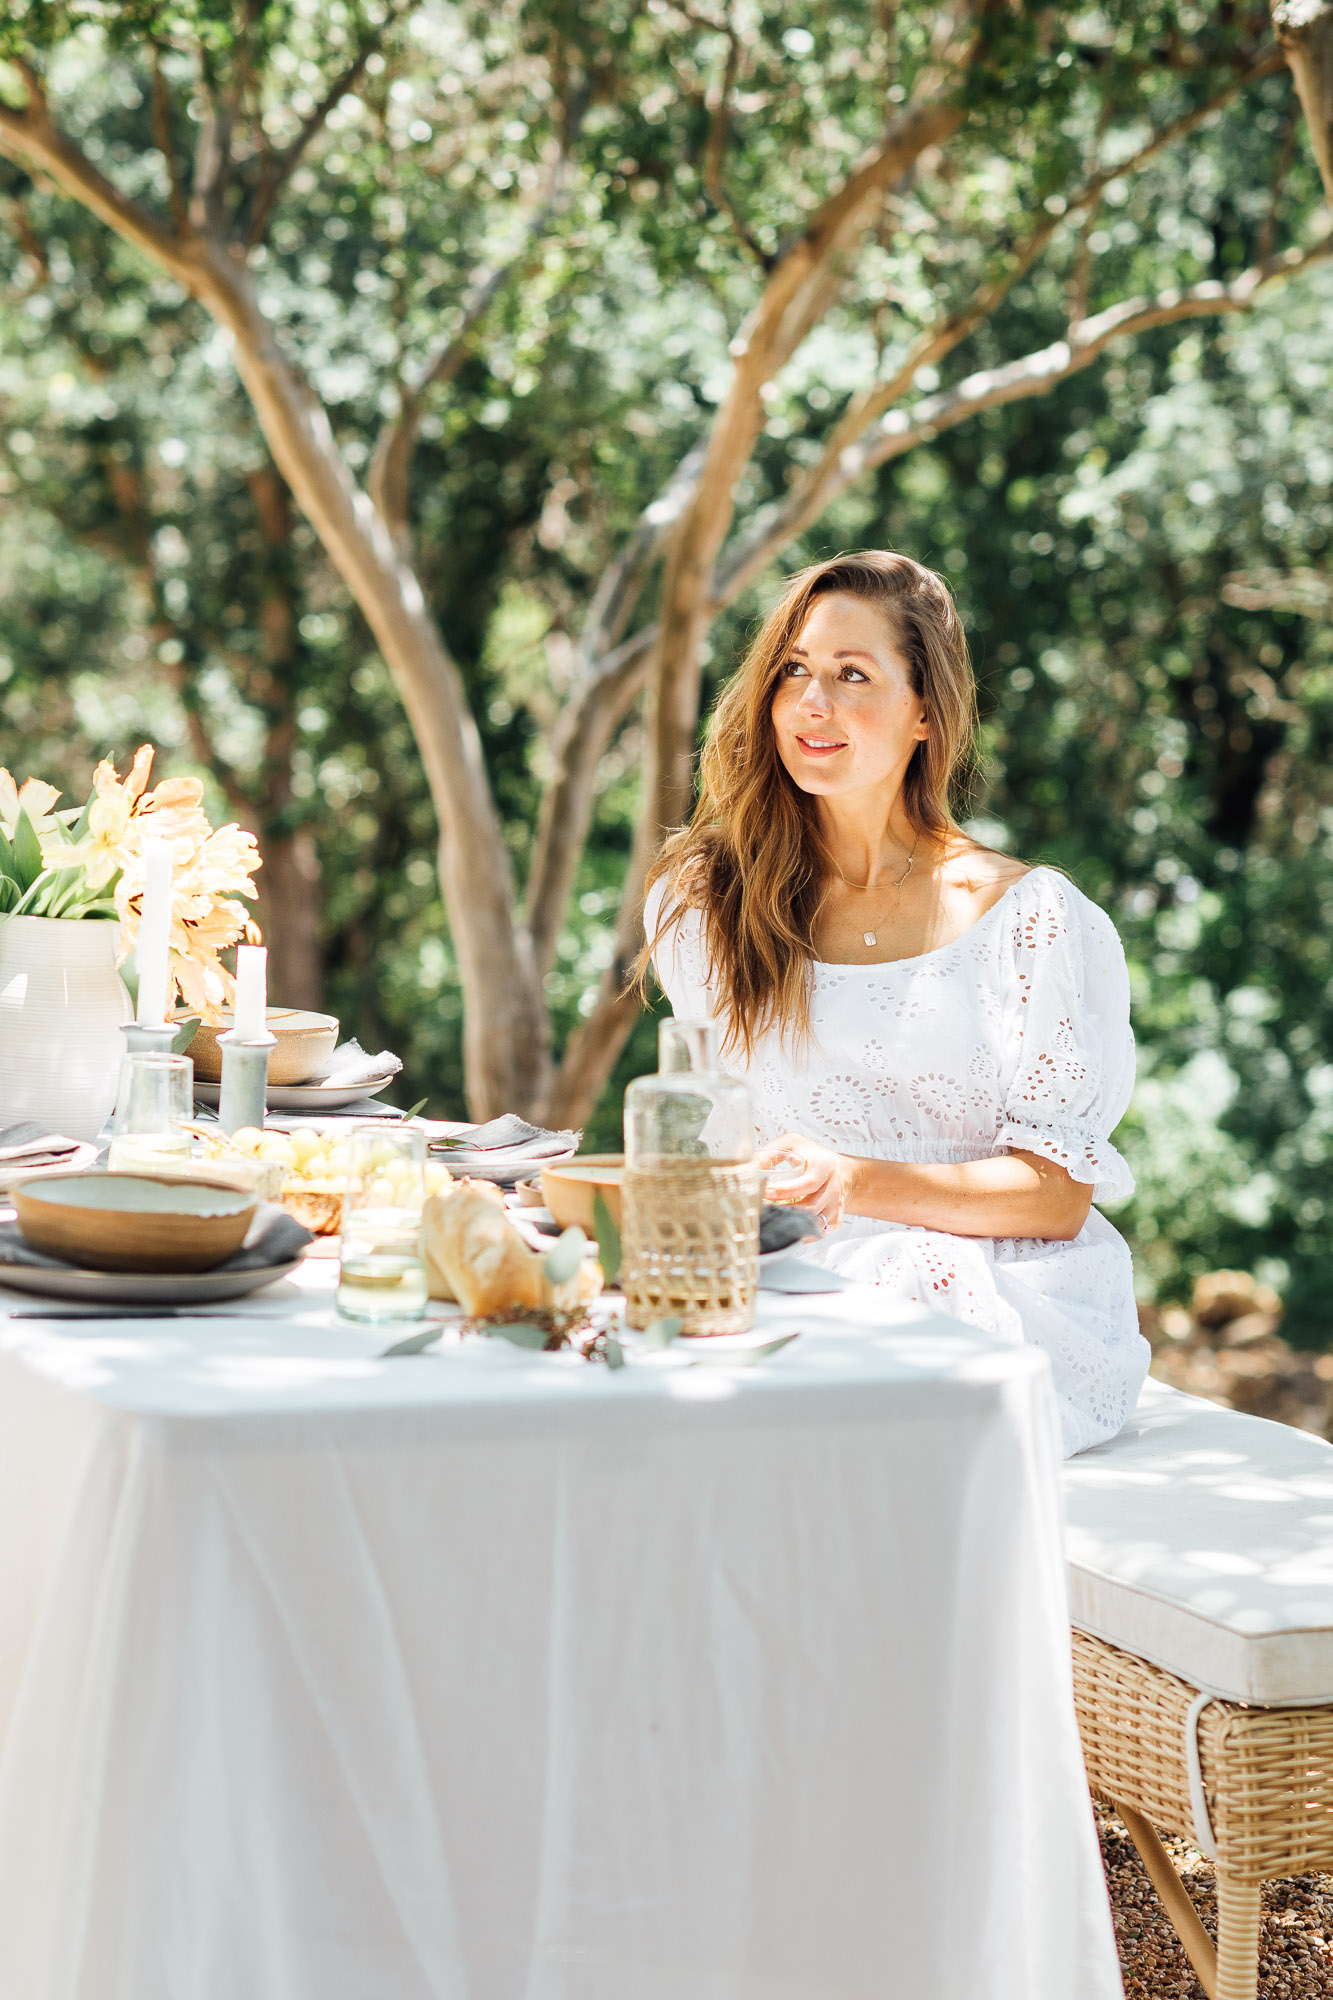 summer table setting ideas, Camille Styles summer dinner party table in backyard with trees